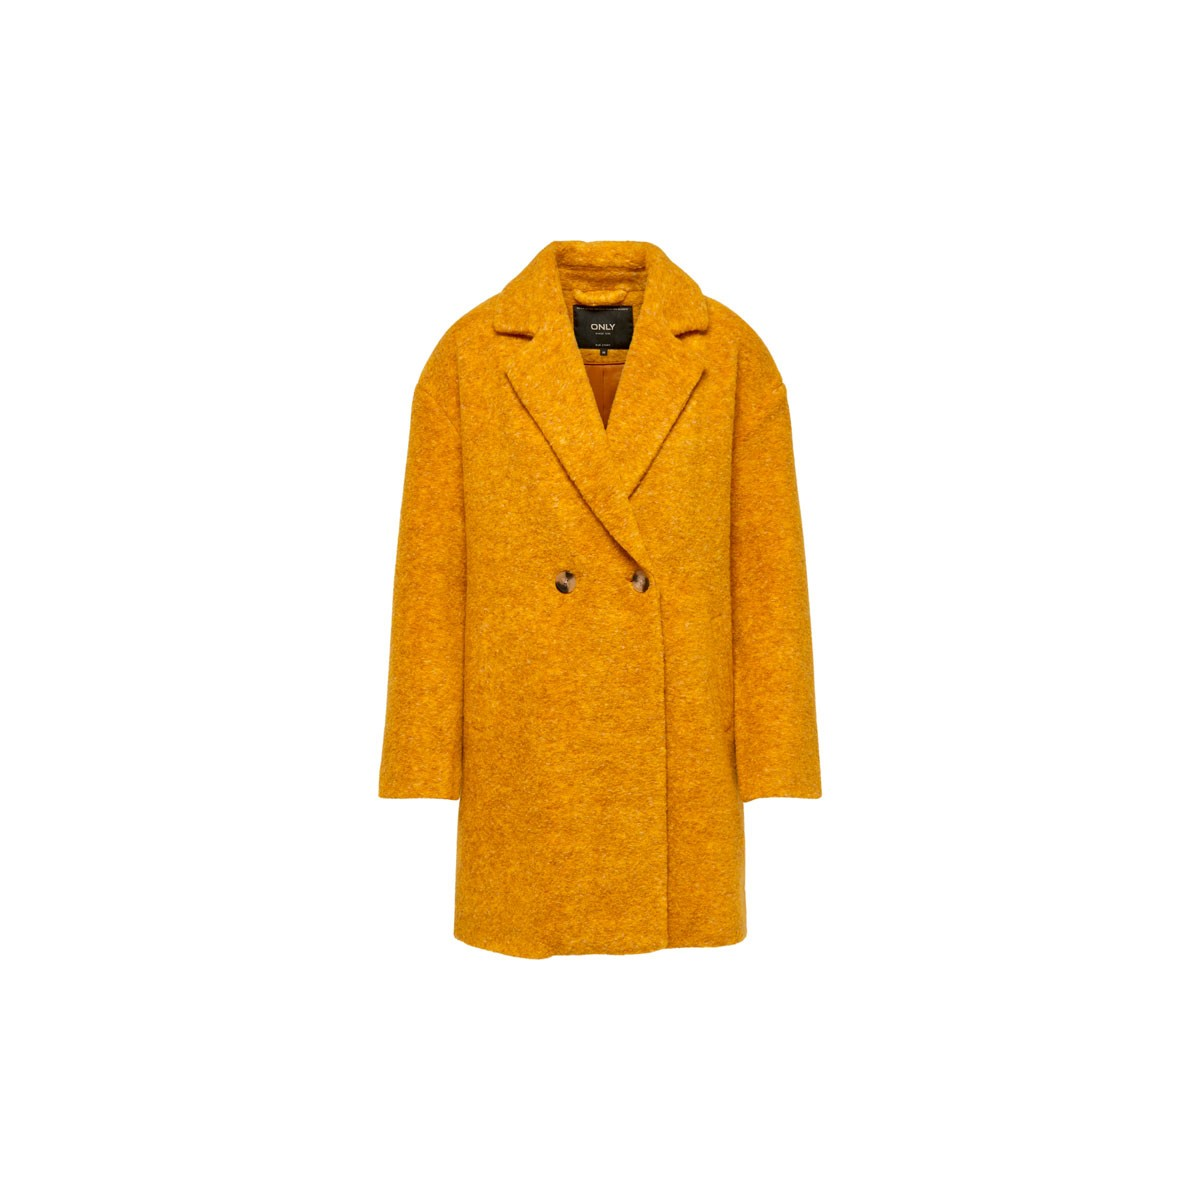 new arrivals online here competitive price Manteau long femme laine Only Nina Céleste jaune | Fred Aston